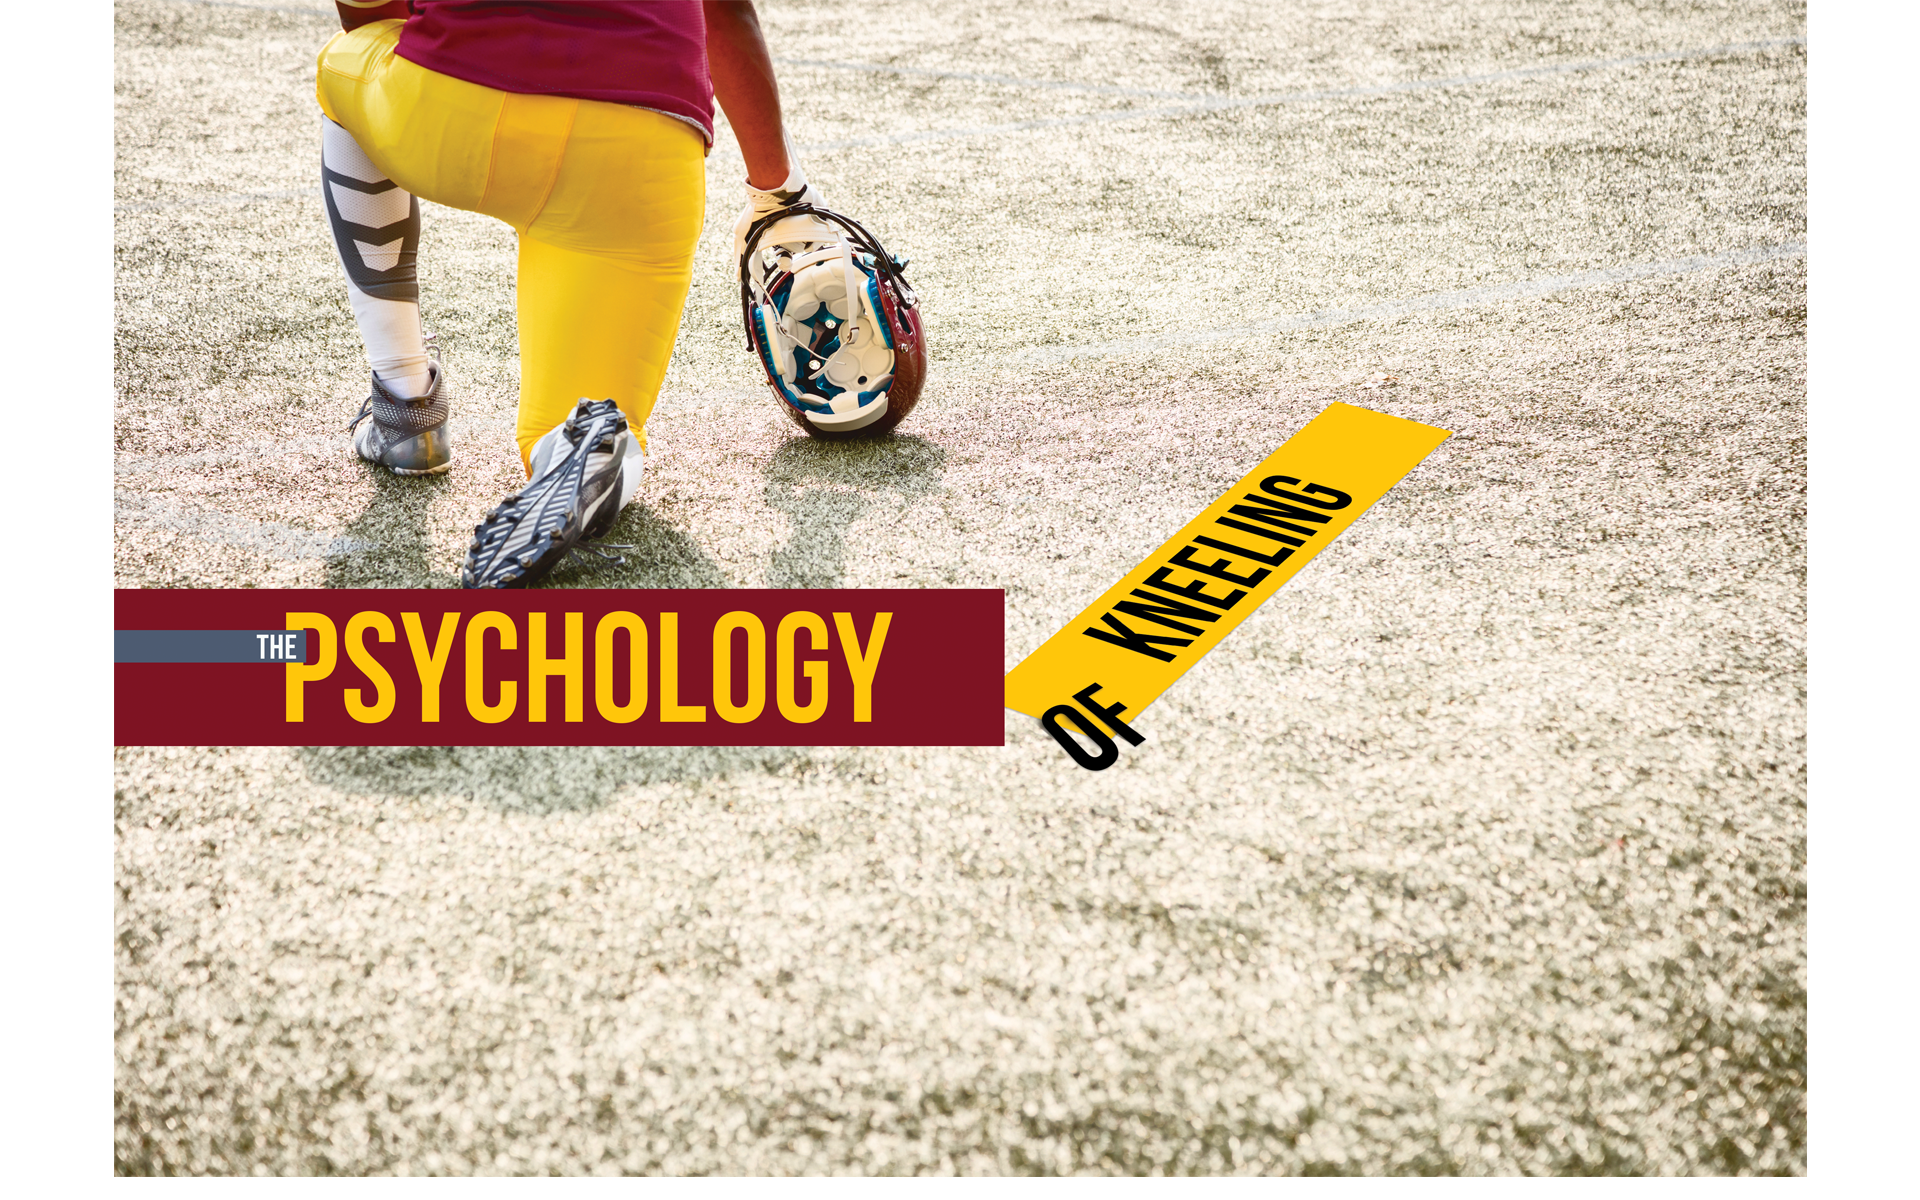 The Psychology of Kneeling